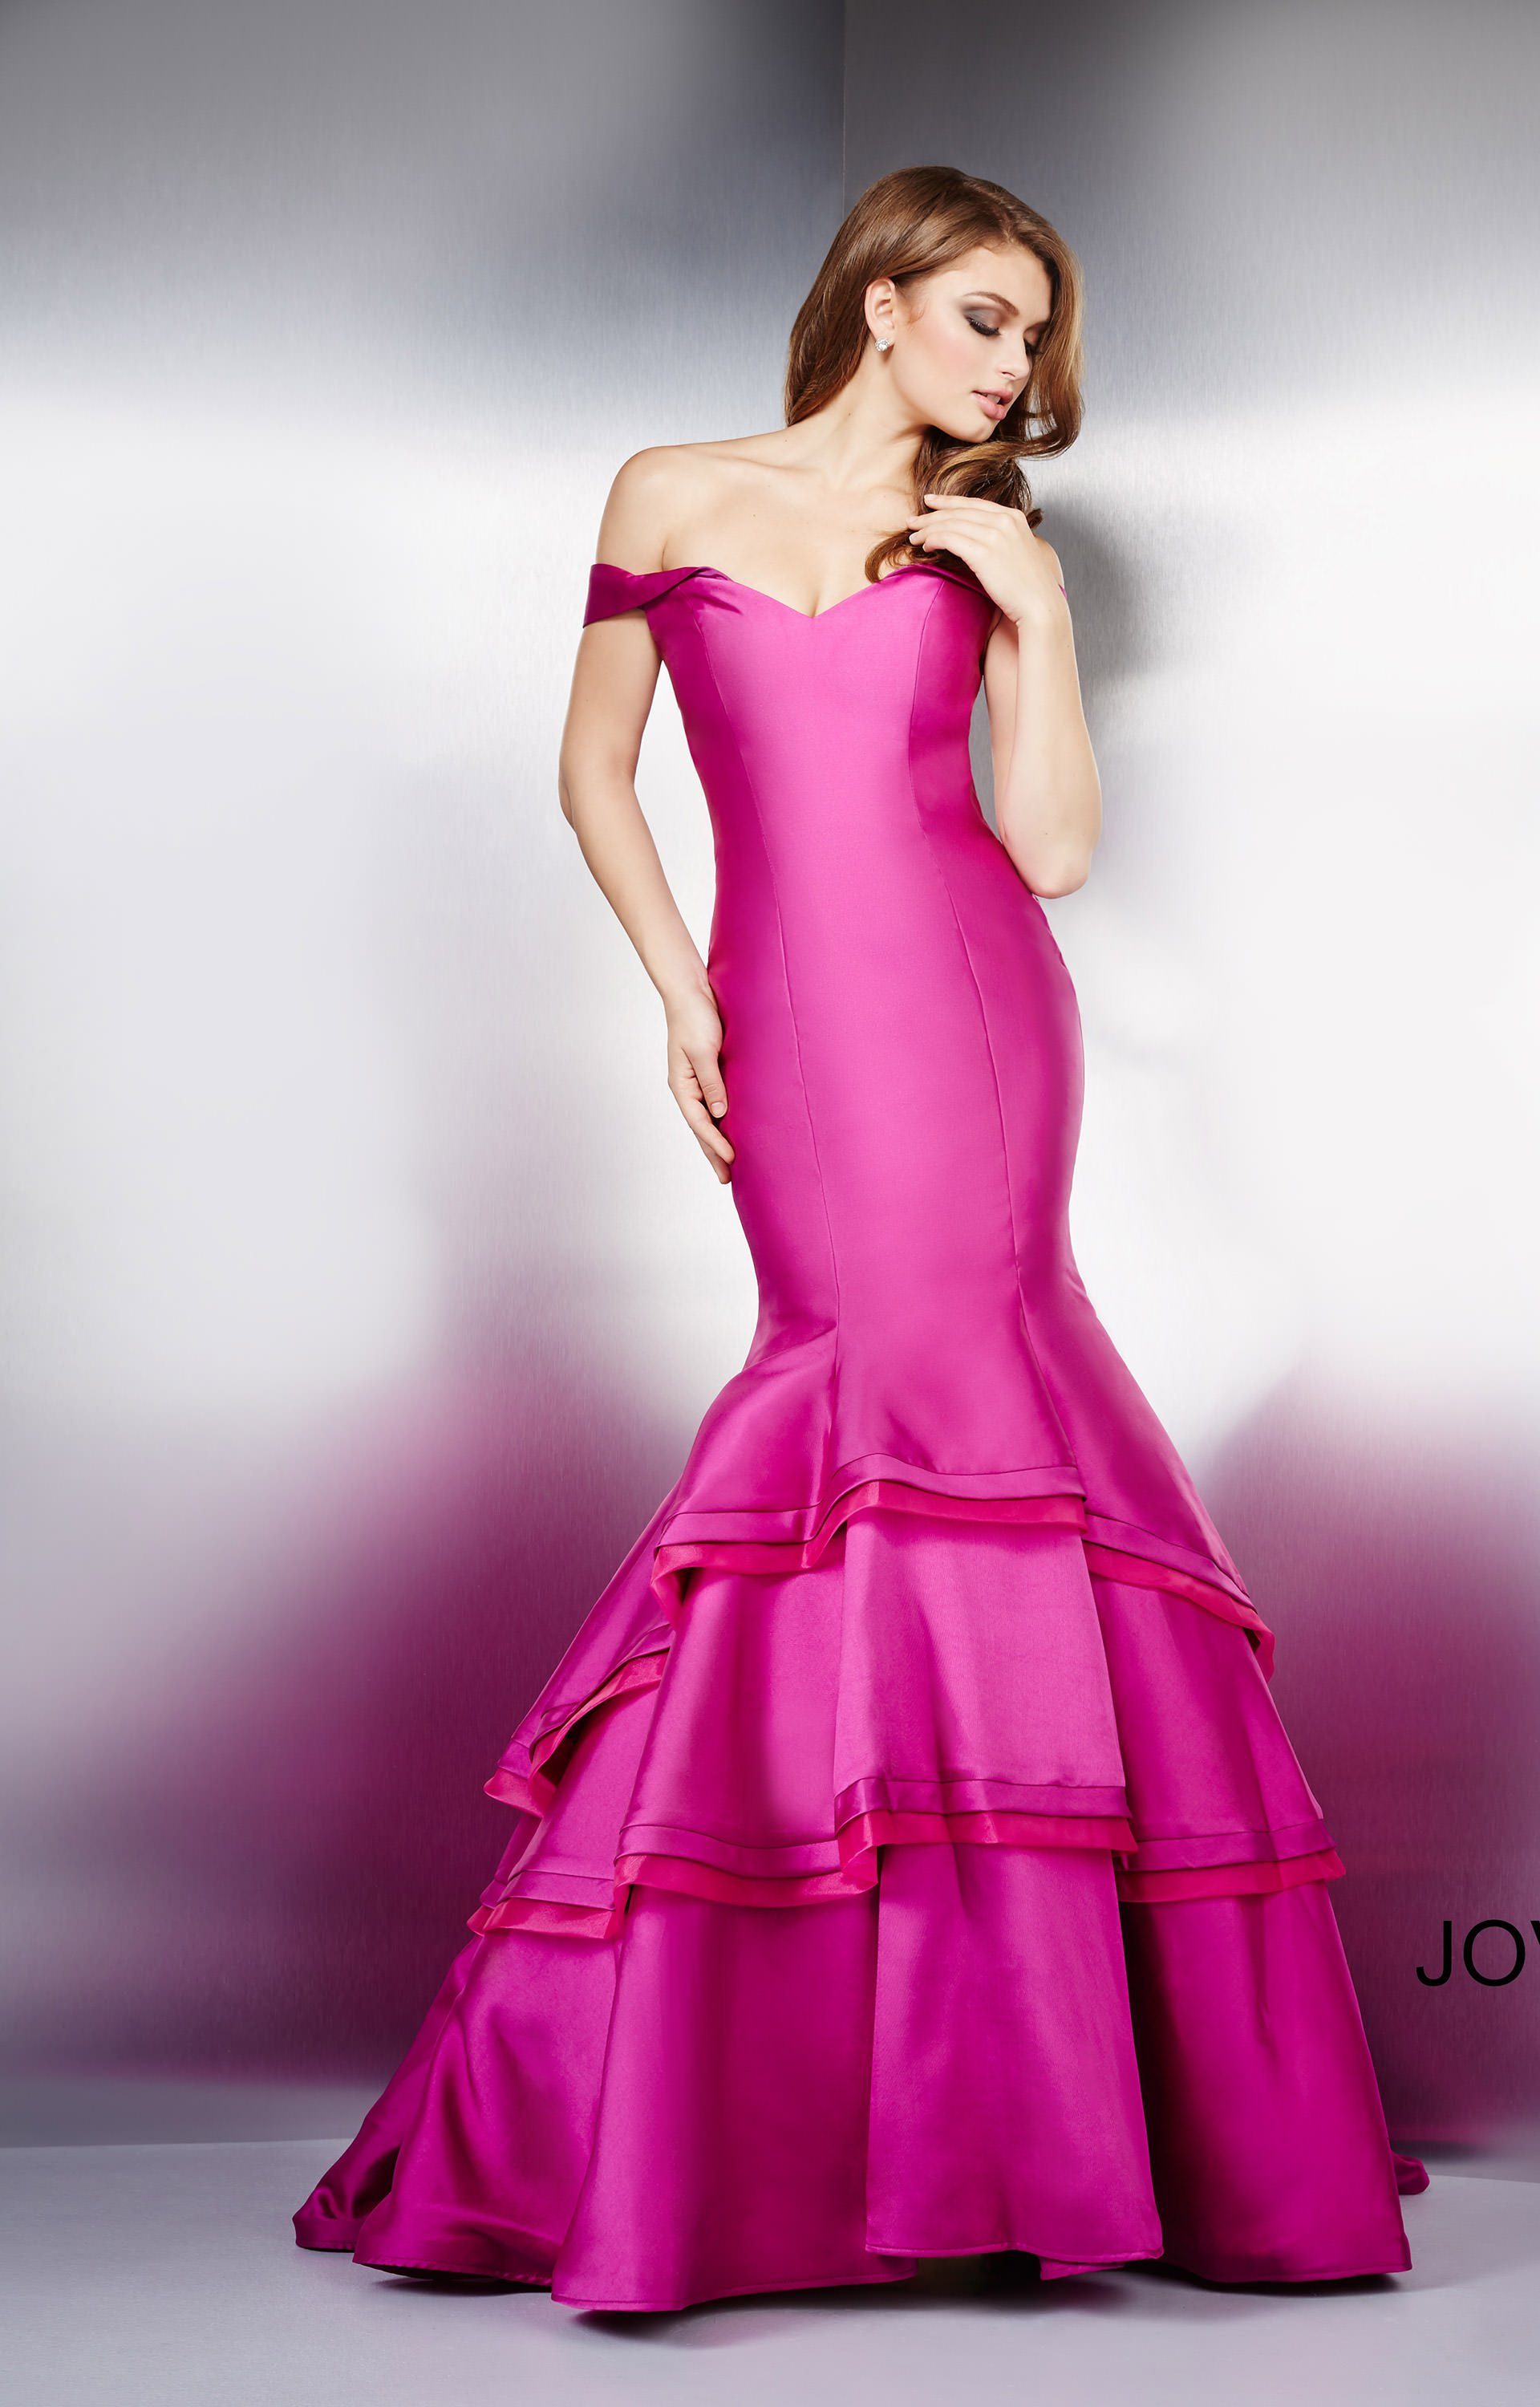 Jovani 31100 - Triple Ruffle Mermaid Dress Prom Dress